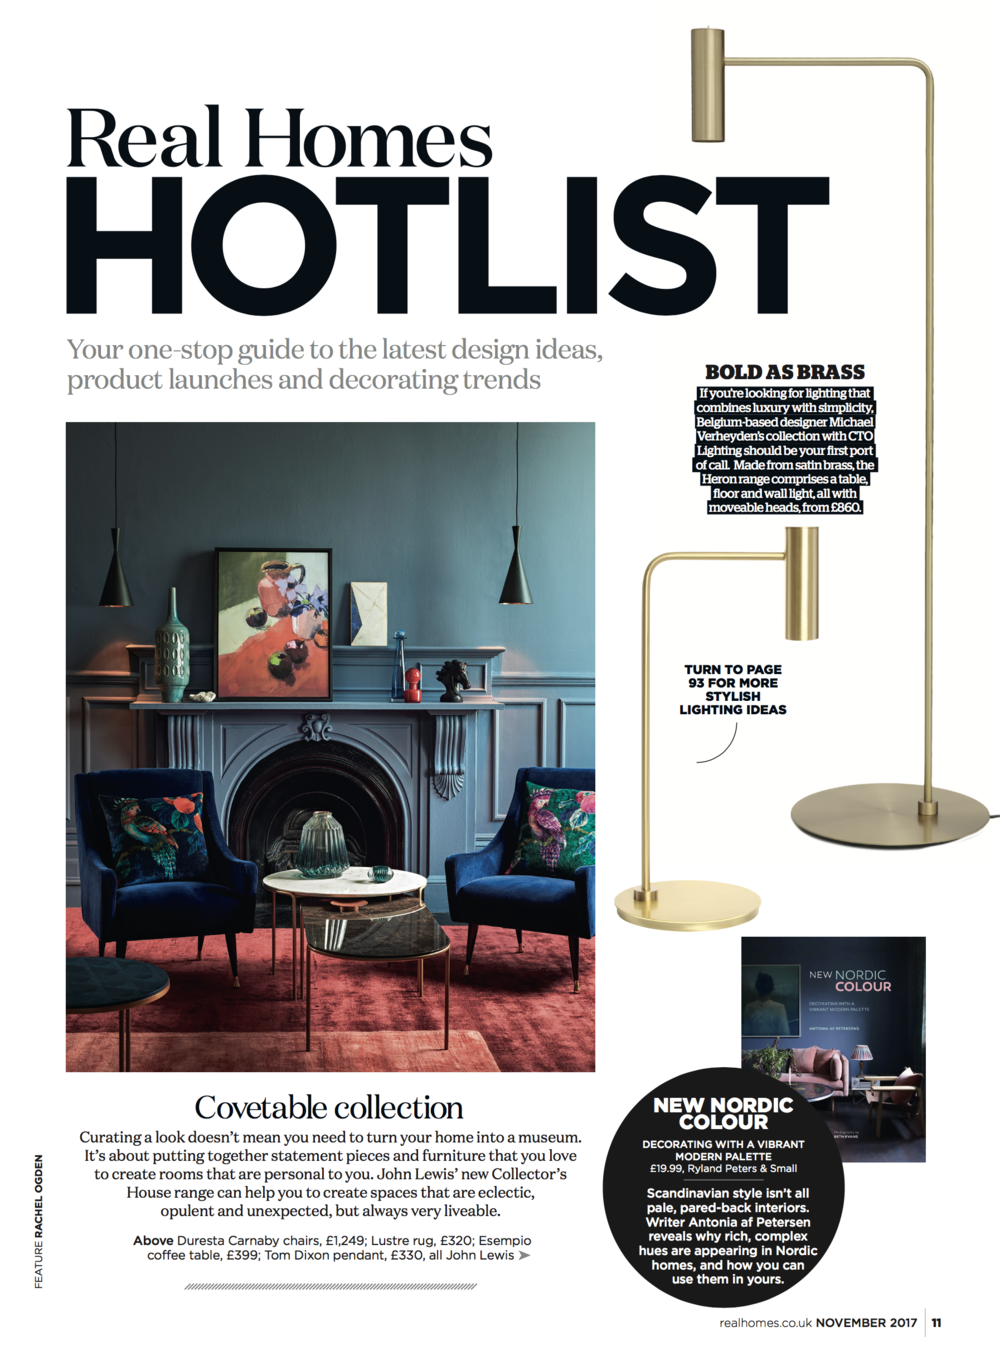 Fiona Duke Interiors on the HOTLIST